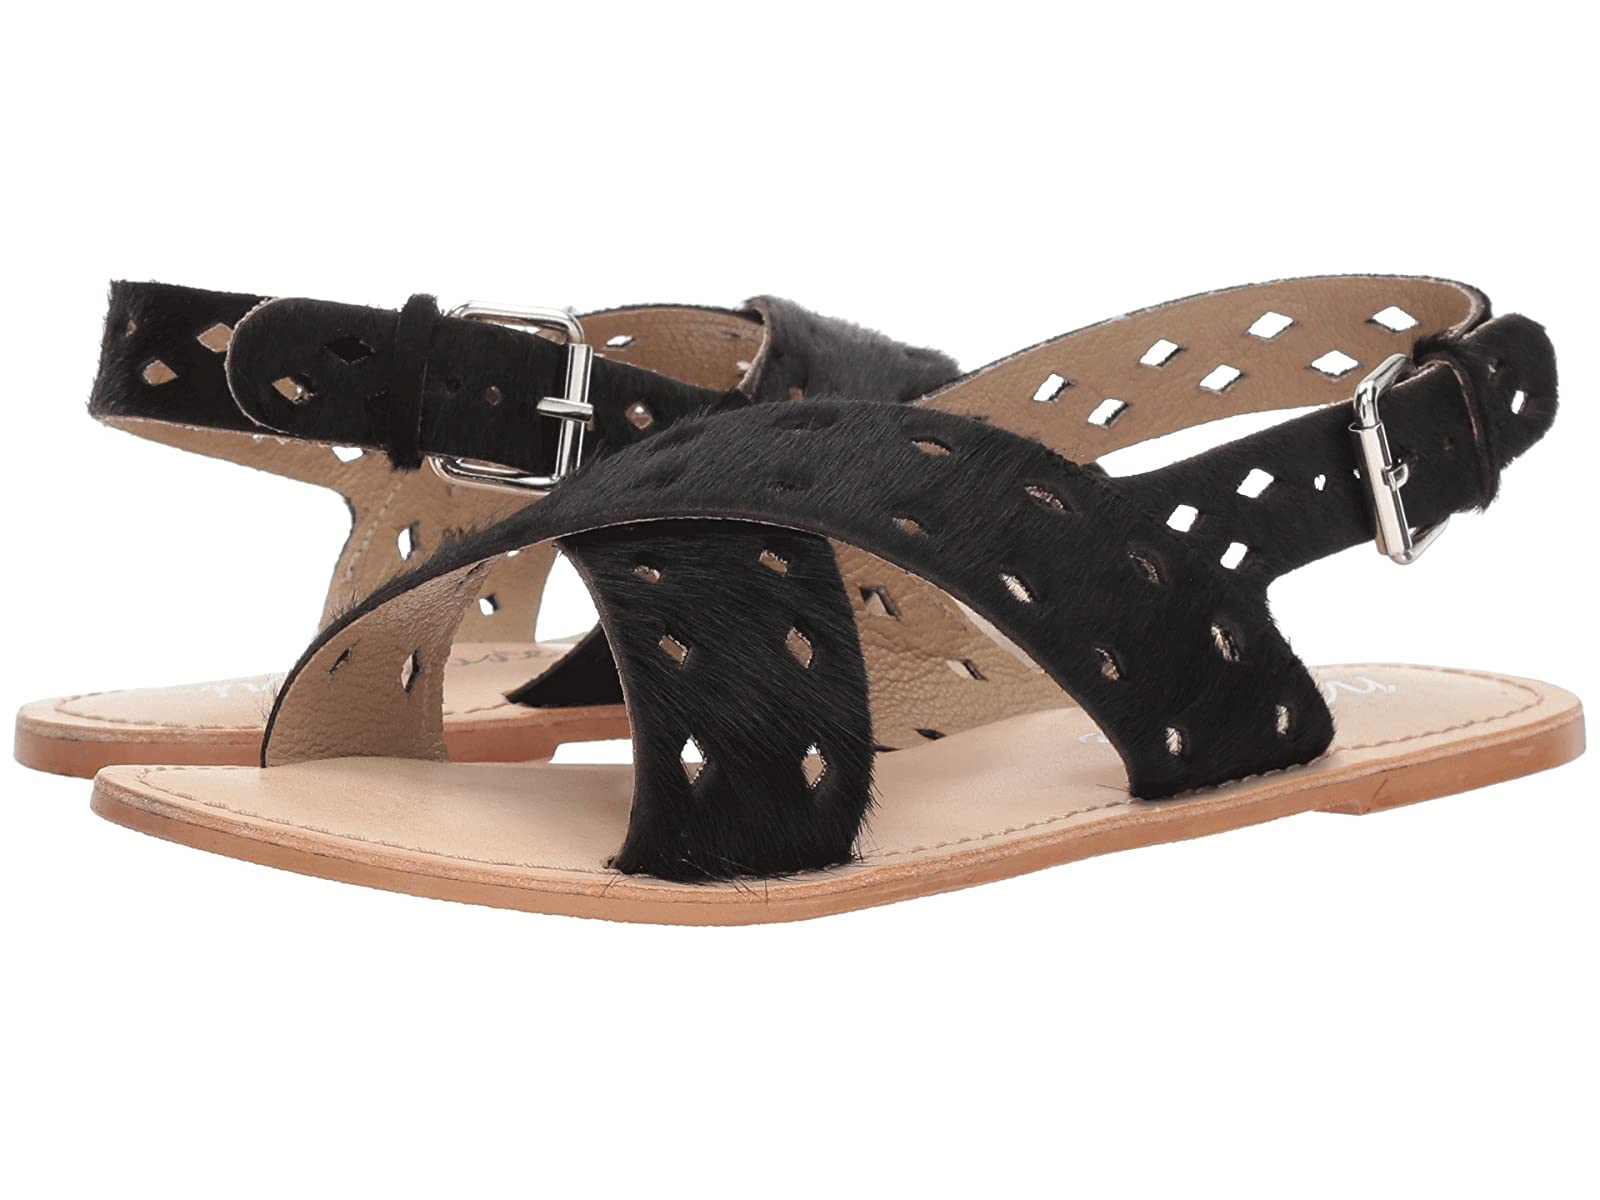 Matisse WhistlerAtmospheric grades have affordable shoes